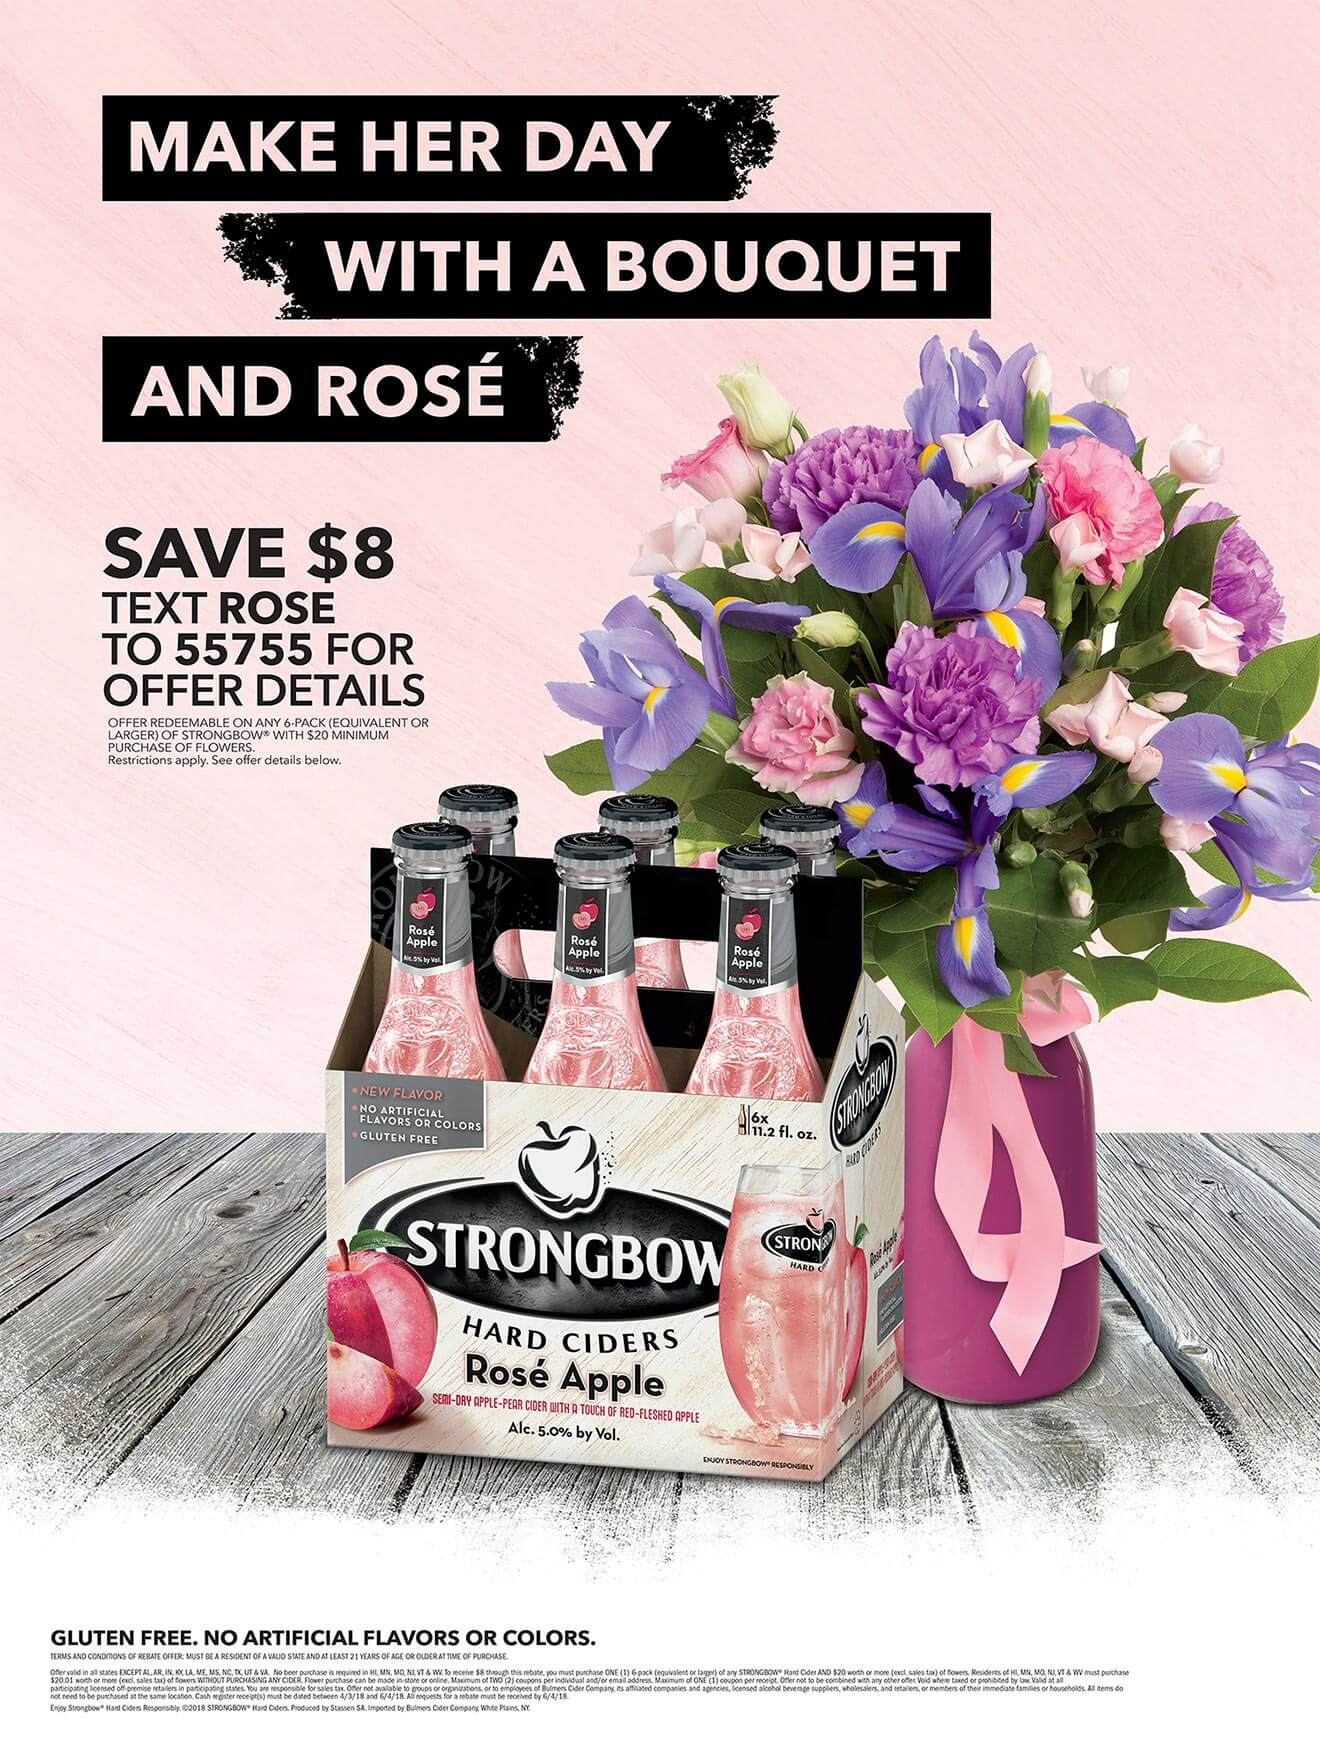 Apple Rosé and a Bouquet for Mother's Day, bouquet and 6 pack bottles